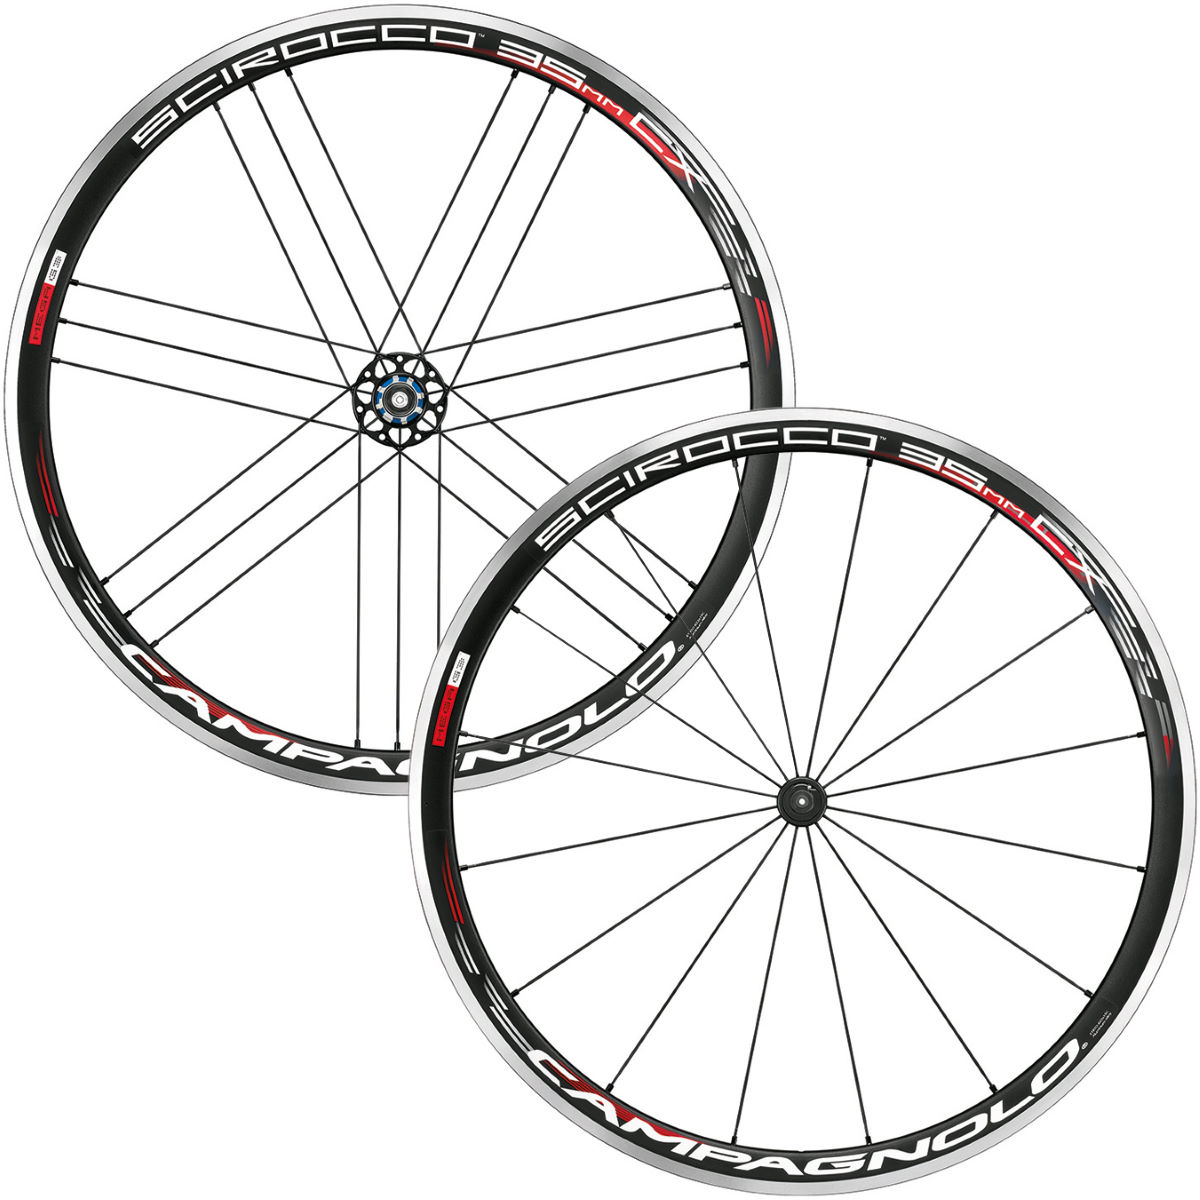 Paire de roues Campagnolo Scirocco 35 CX - Campagnolo Freehub Noir Roues performance